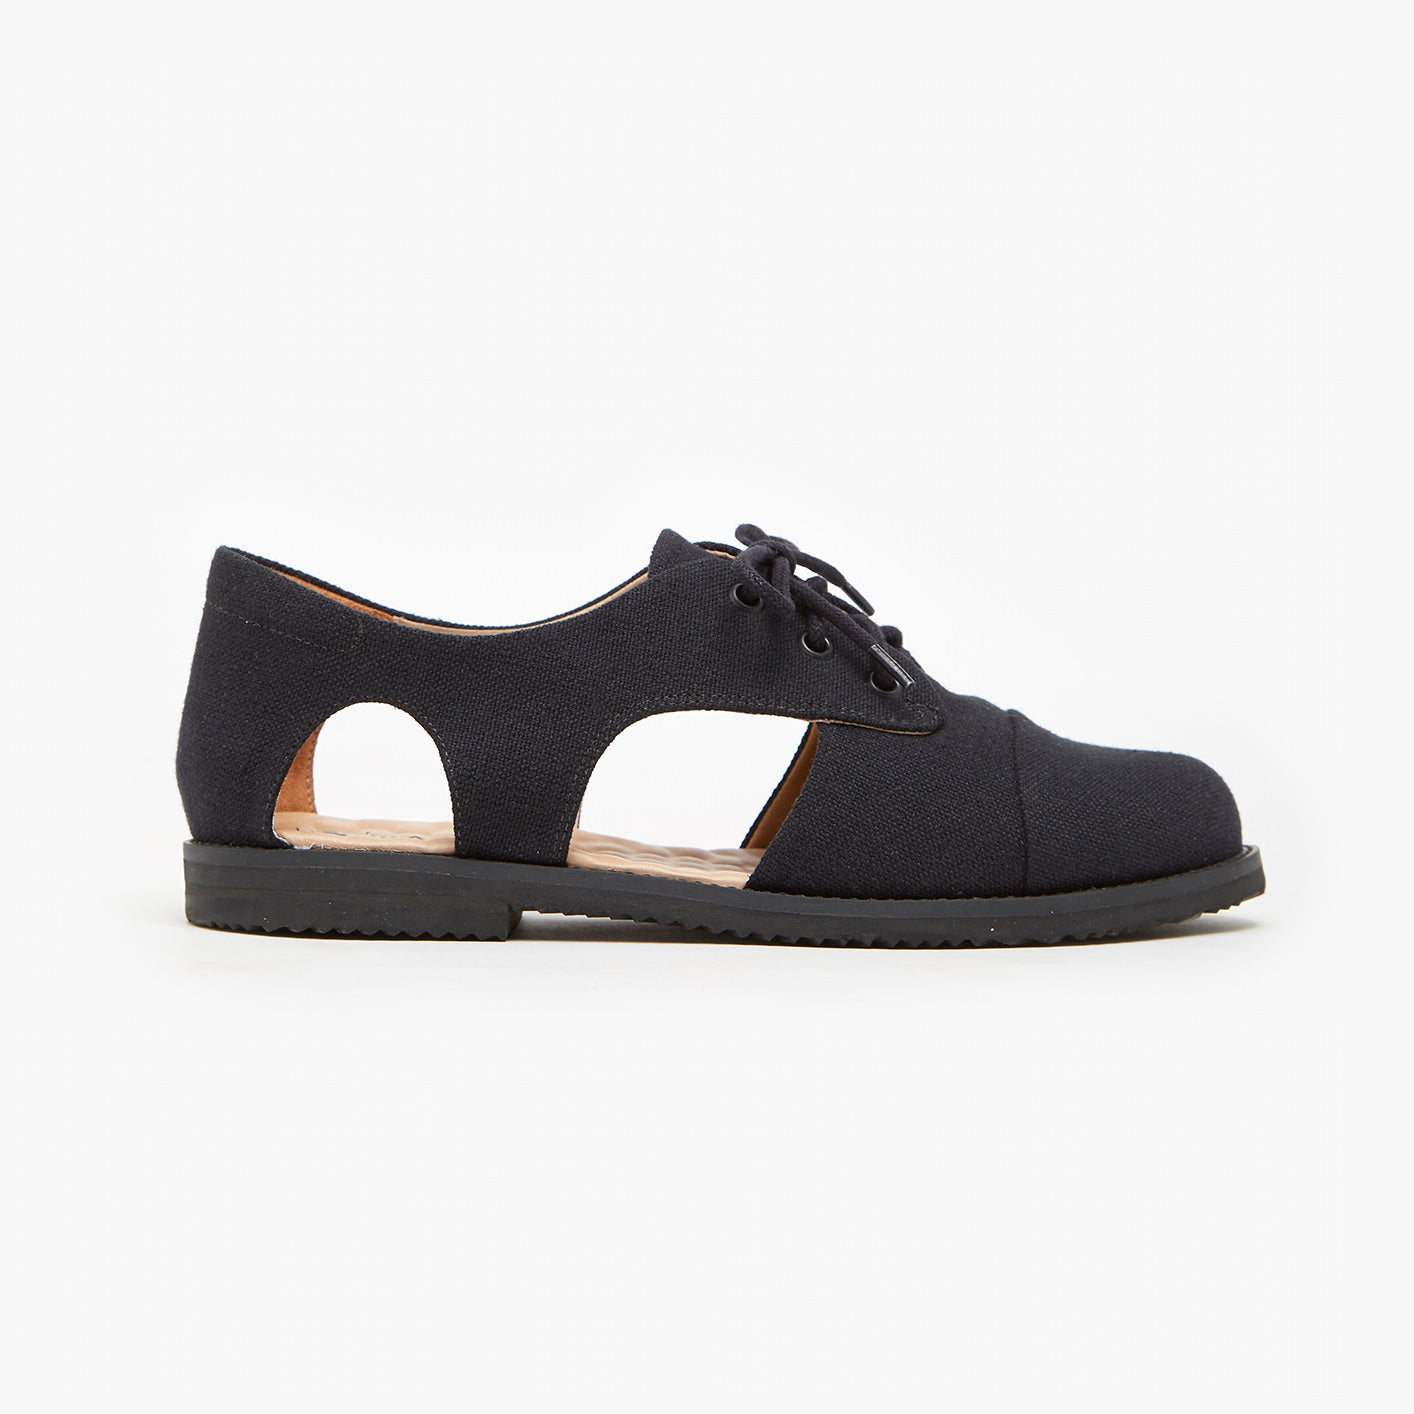 MONO BLACK CUTOUT OXFORD - Insectashoes brasil